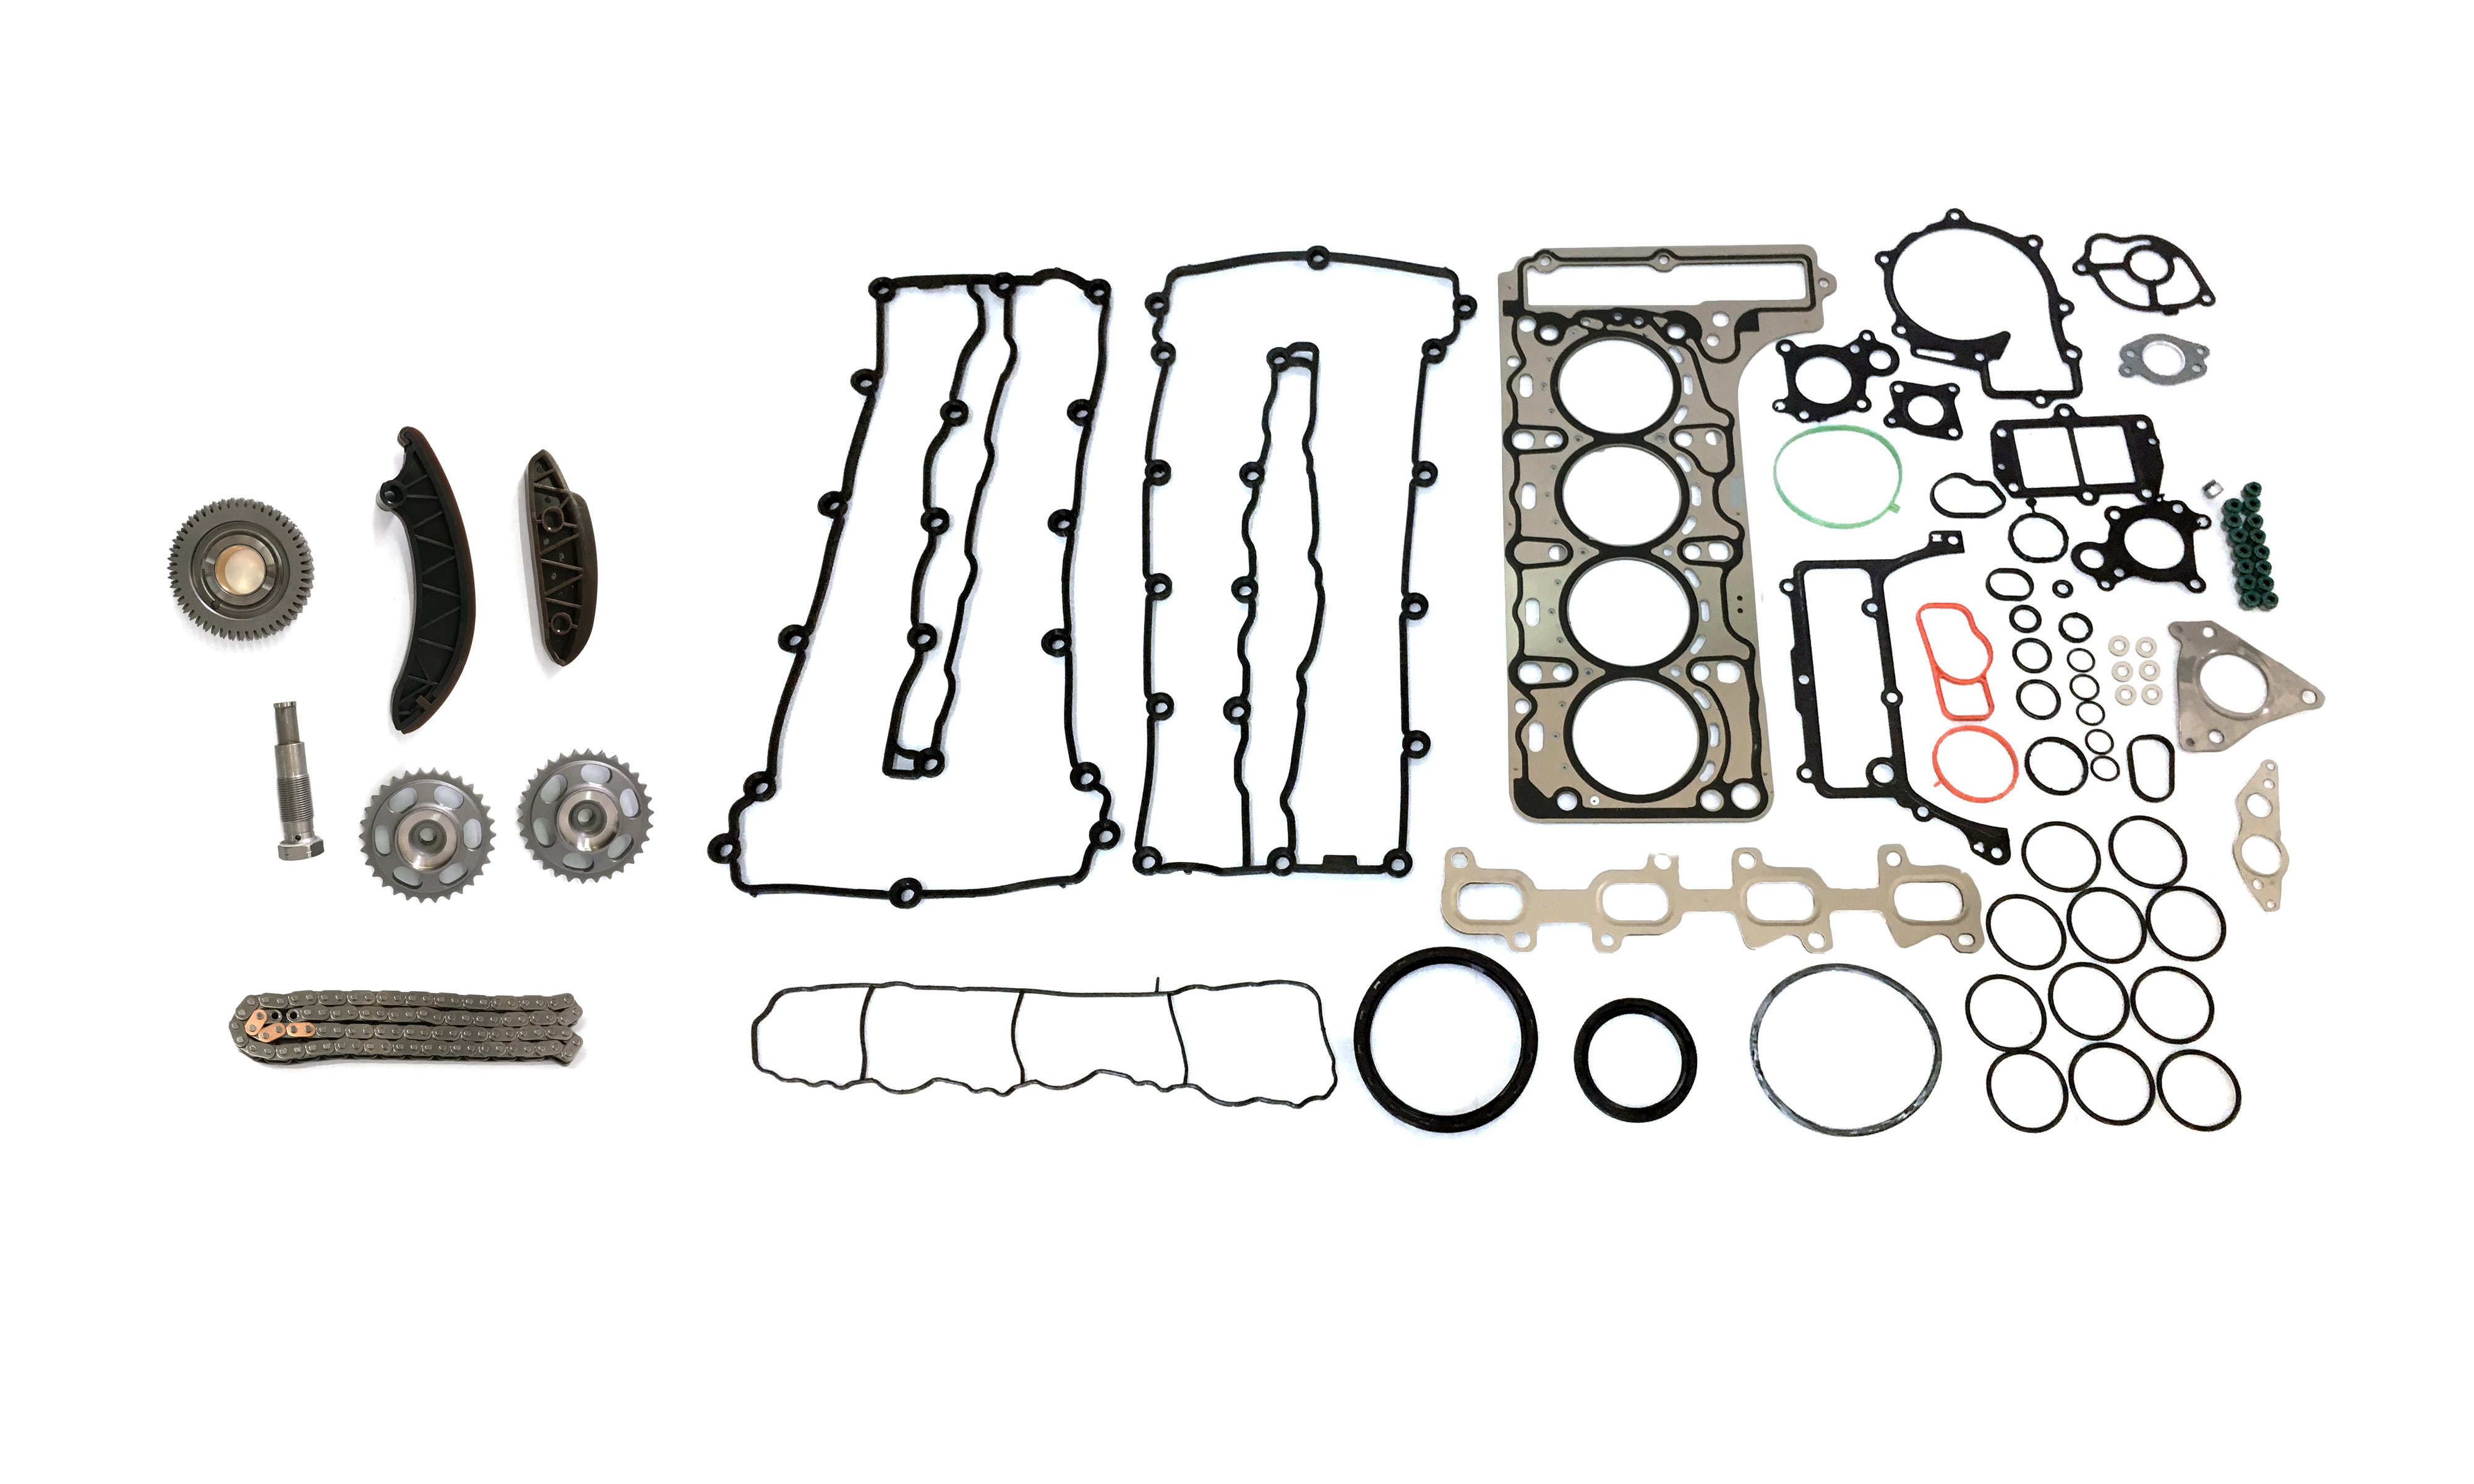 Timing chain set cylinder head gasket Mercedes W205 C250 2.2 CDI 651.911 NEW